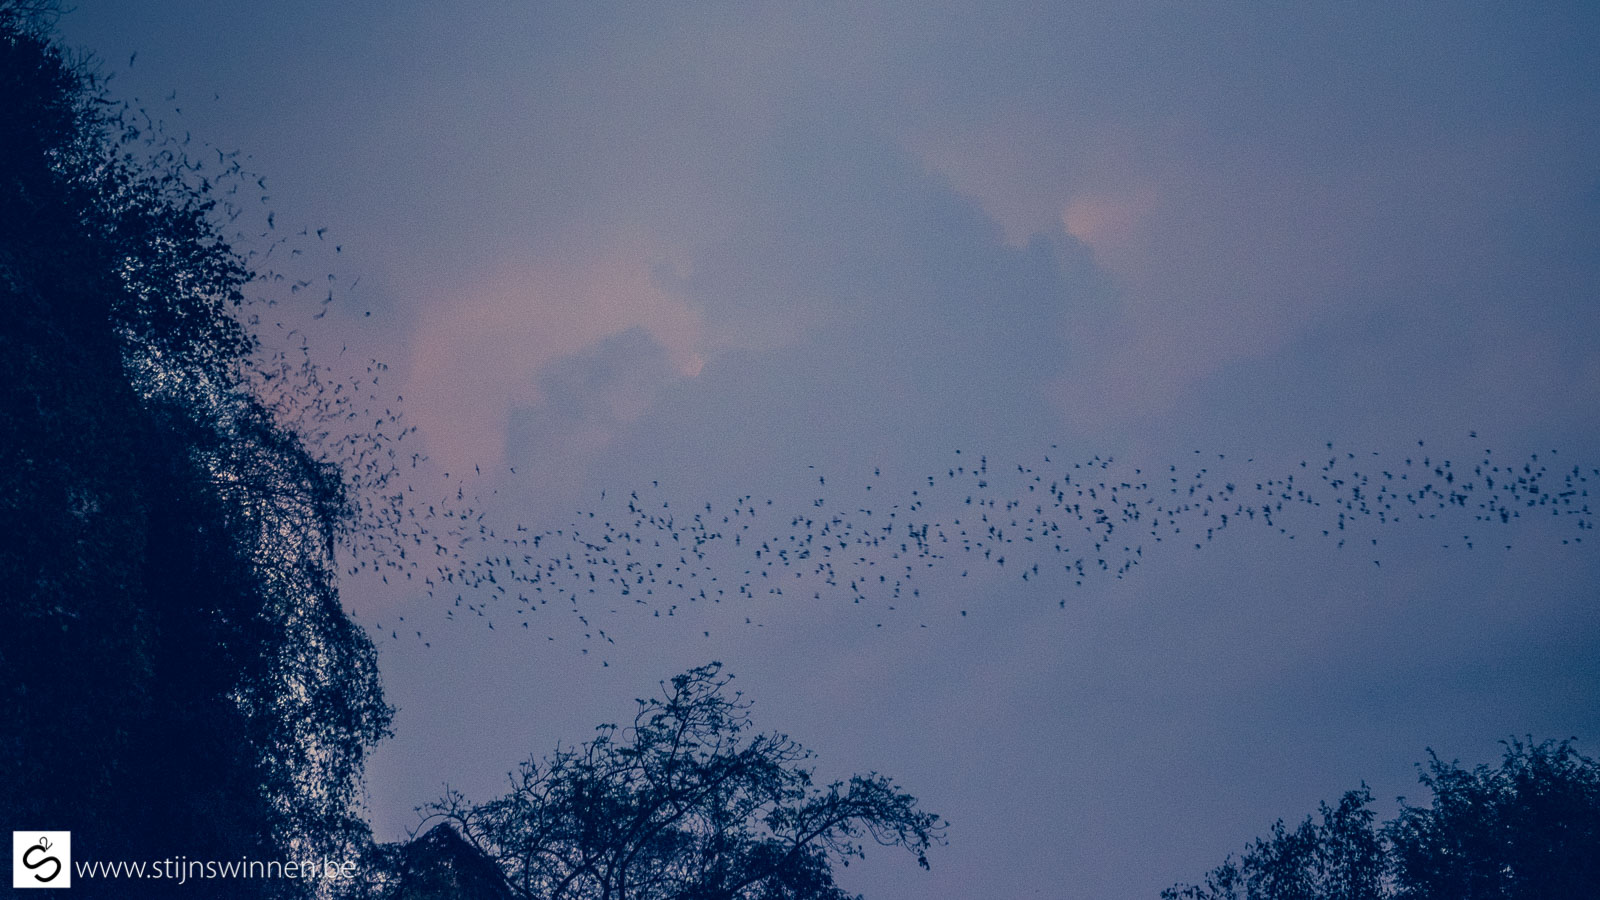 BATtambang - What you see are bats